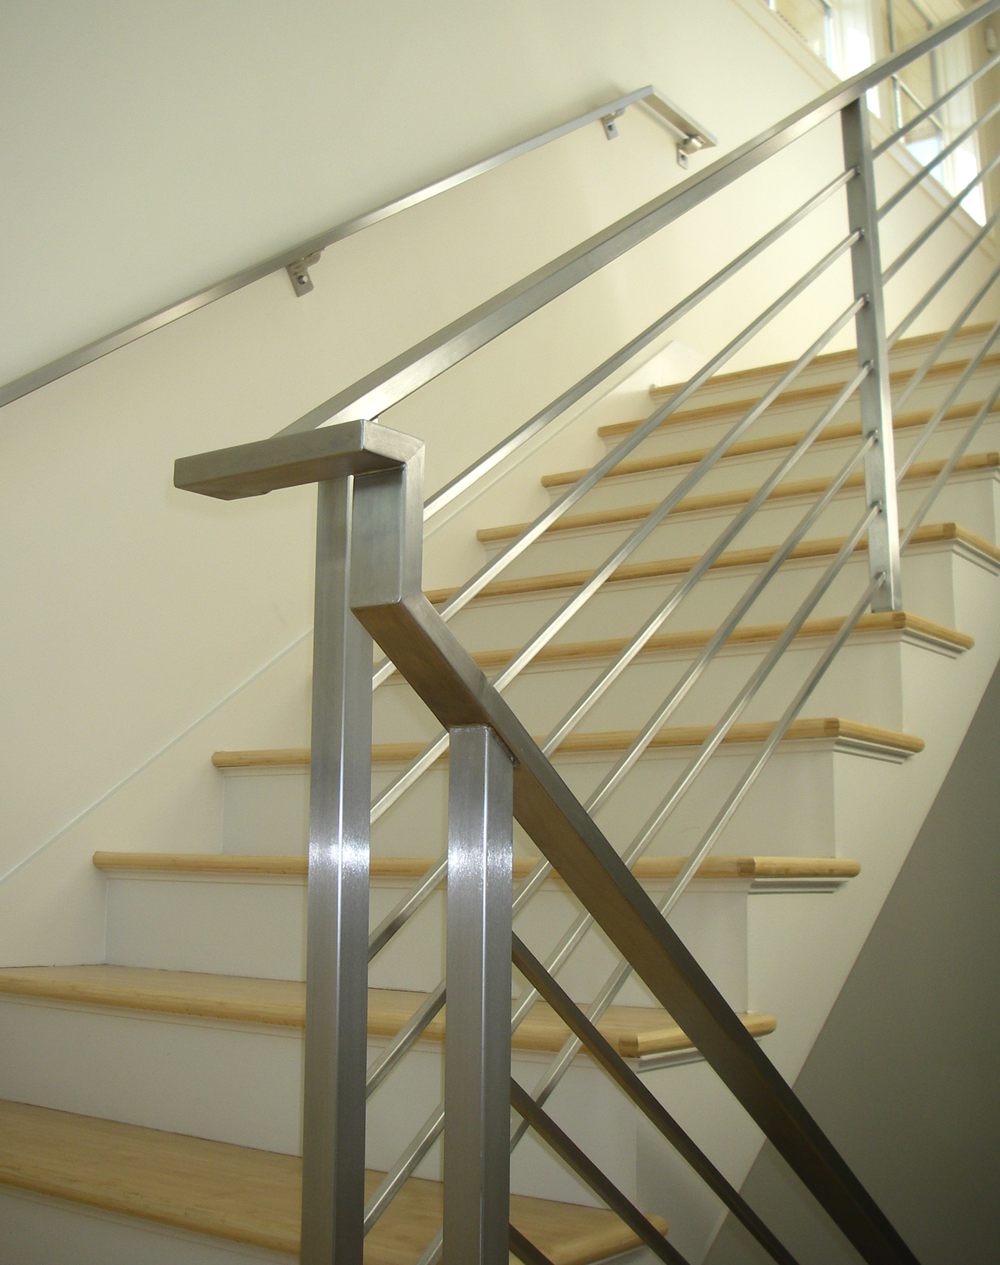 Stainless Steel Tube Railing